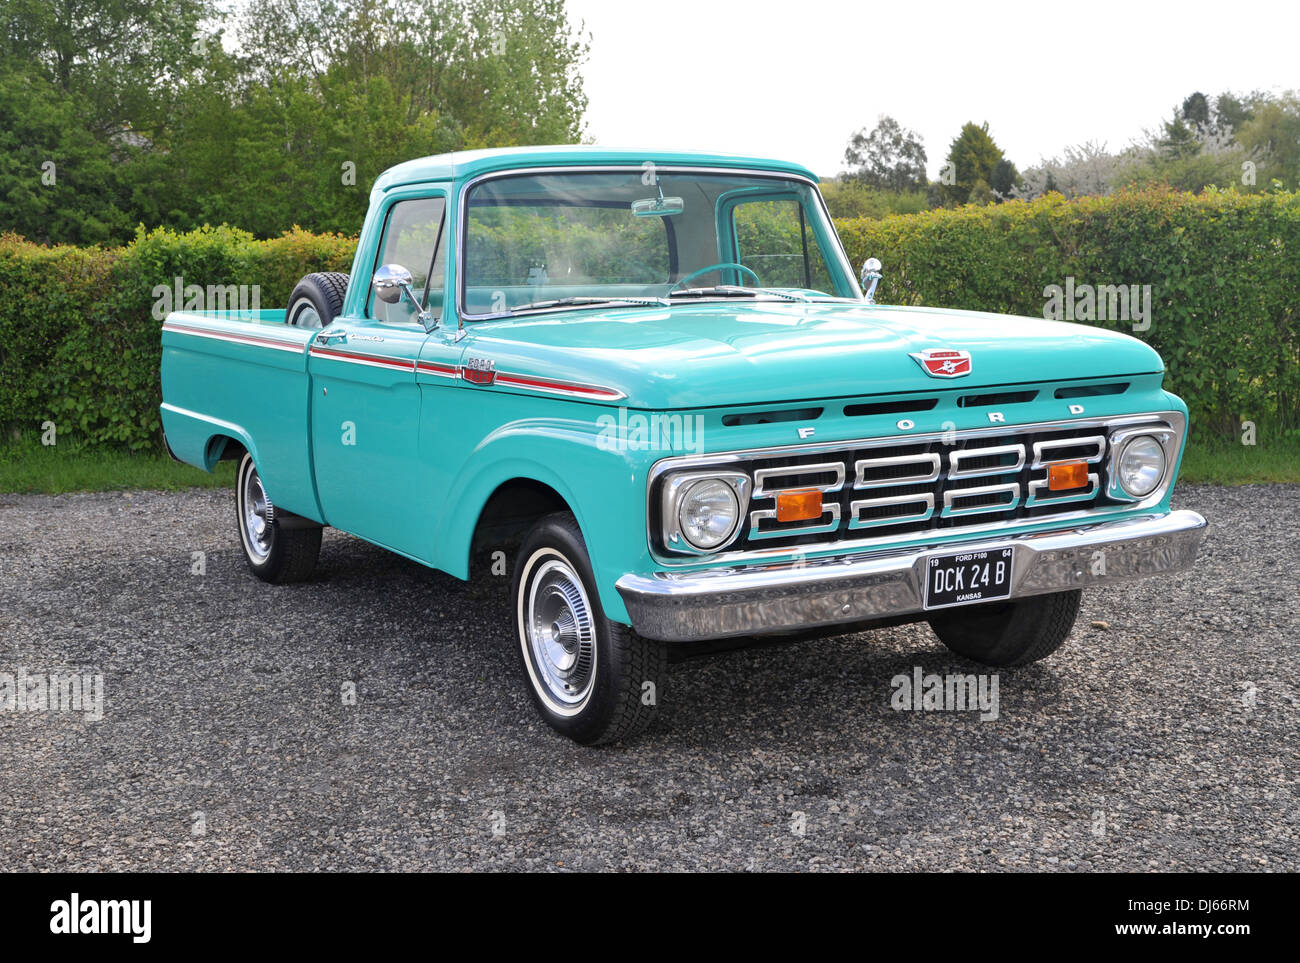 Vintage American Cars For Sale In Uk